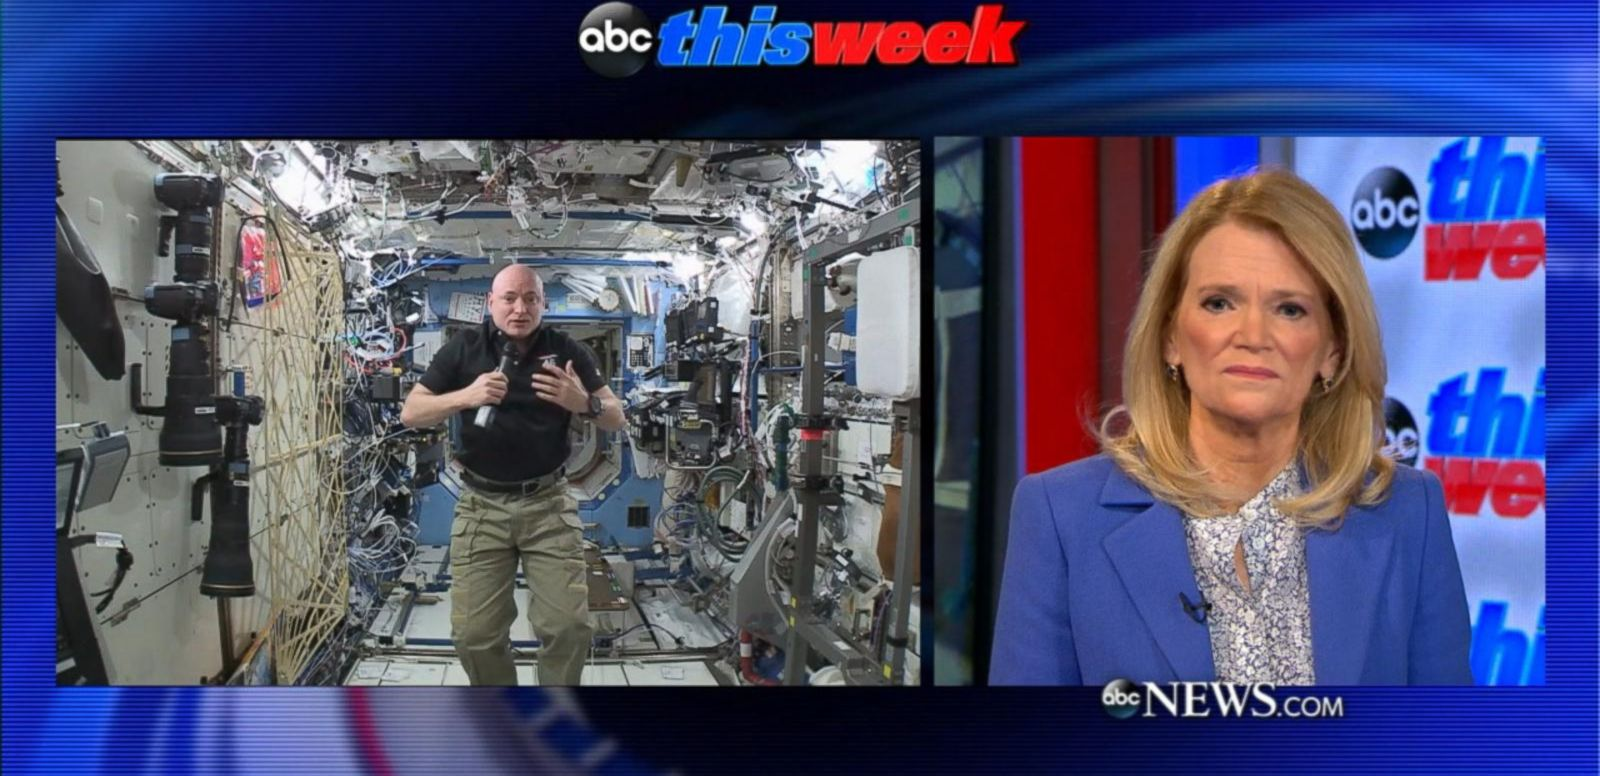 NASA's Scott Kelly Explains What It's Like to Sleep in Space